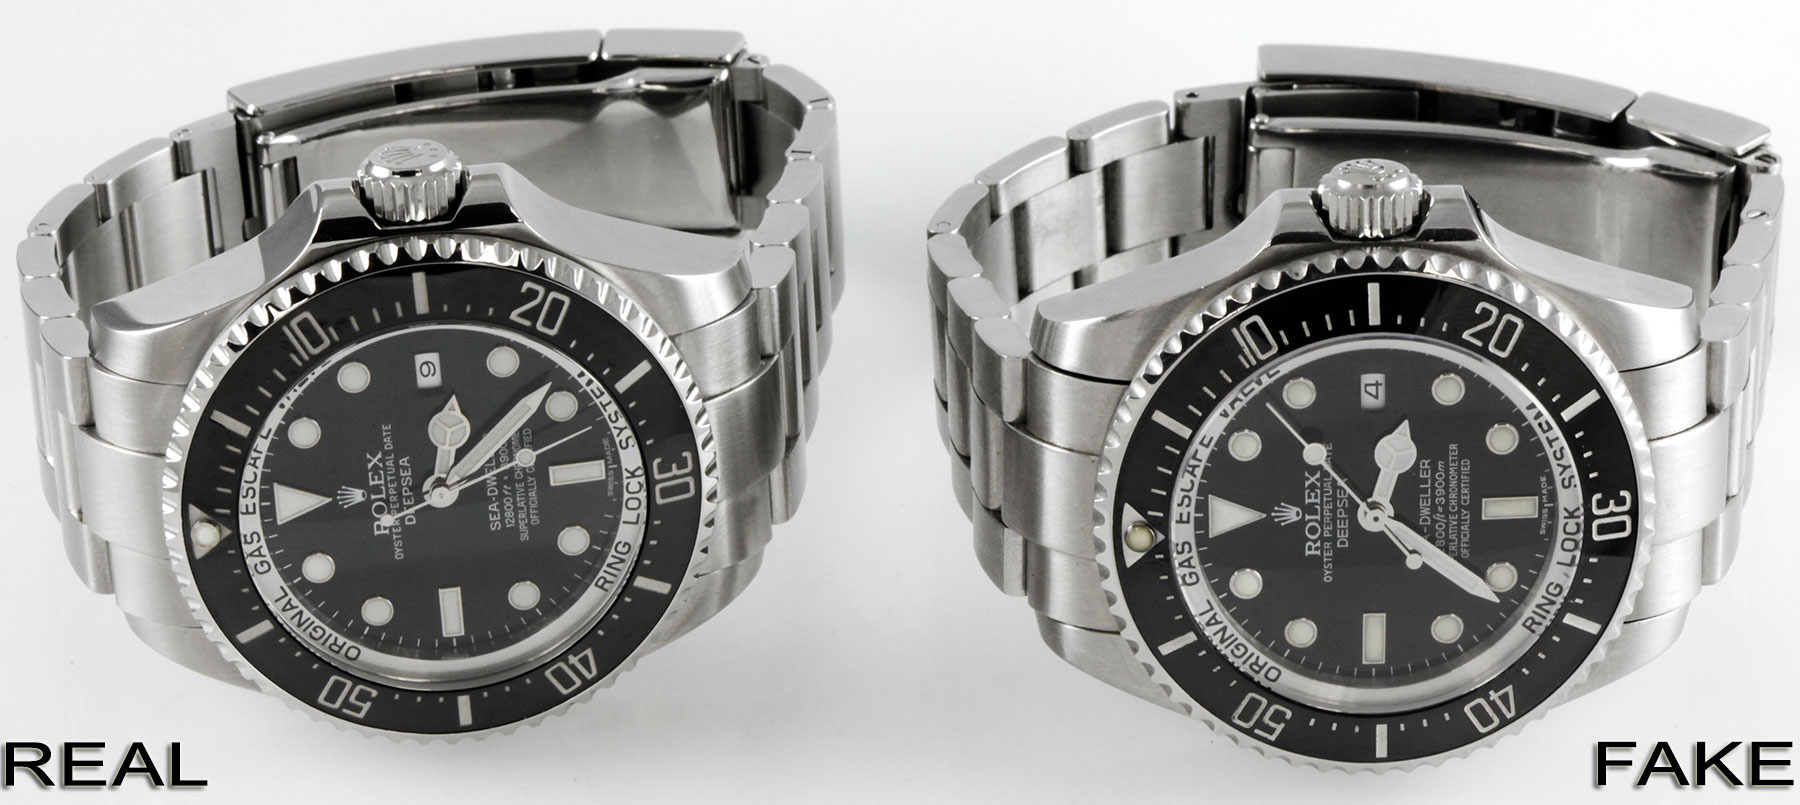 Rolex Sea Dweller Deepsea Fake Vs Real Comparison 116660